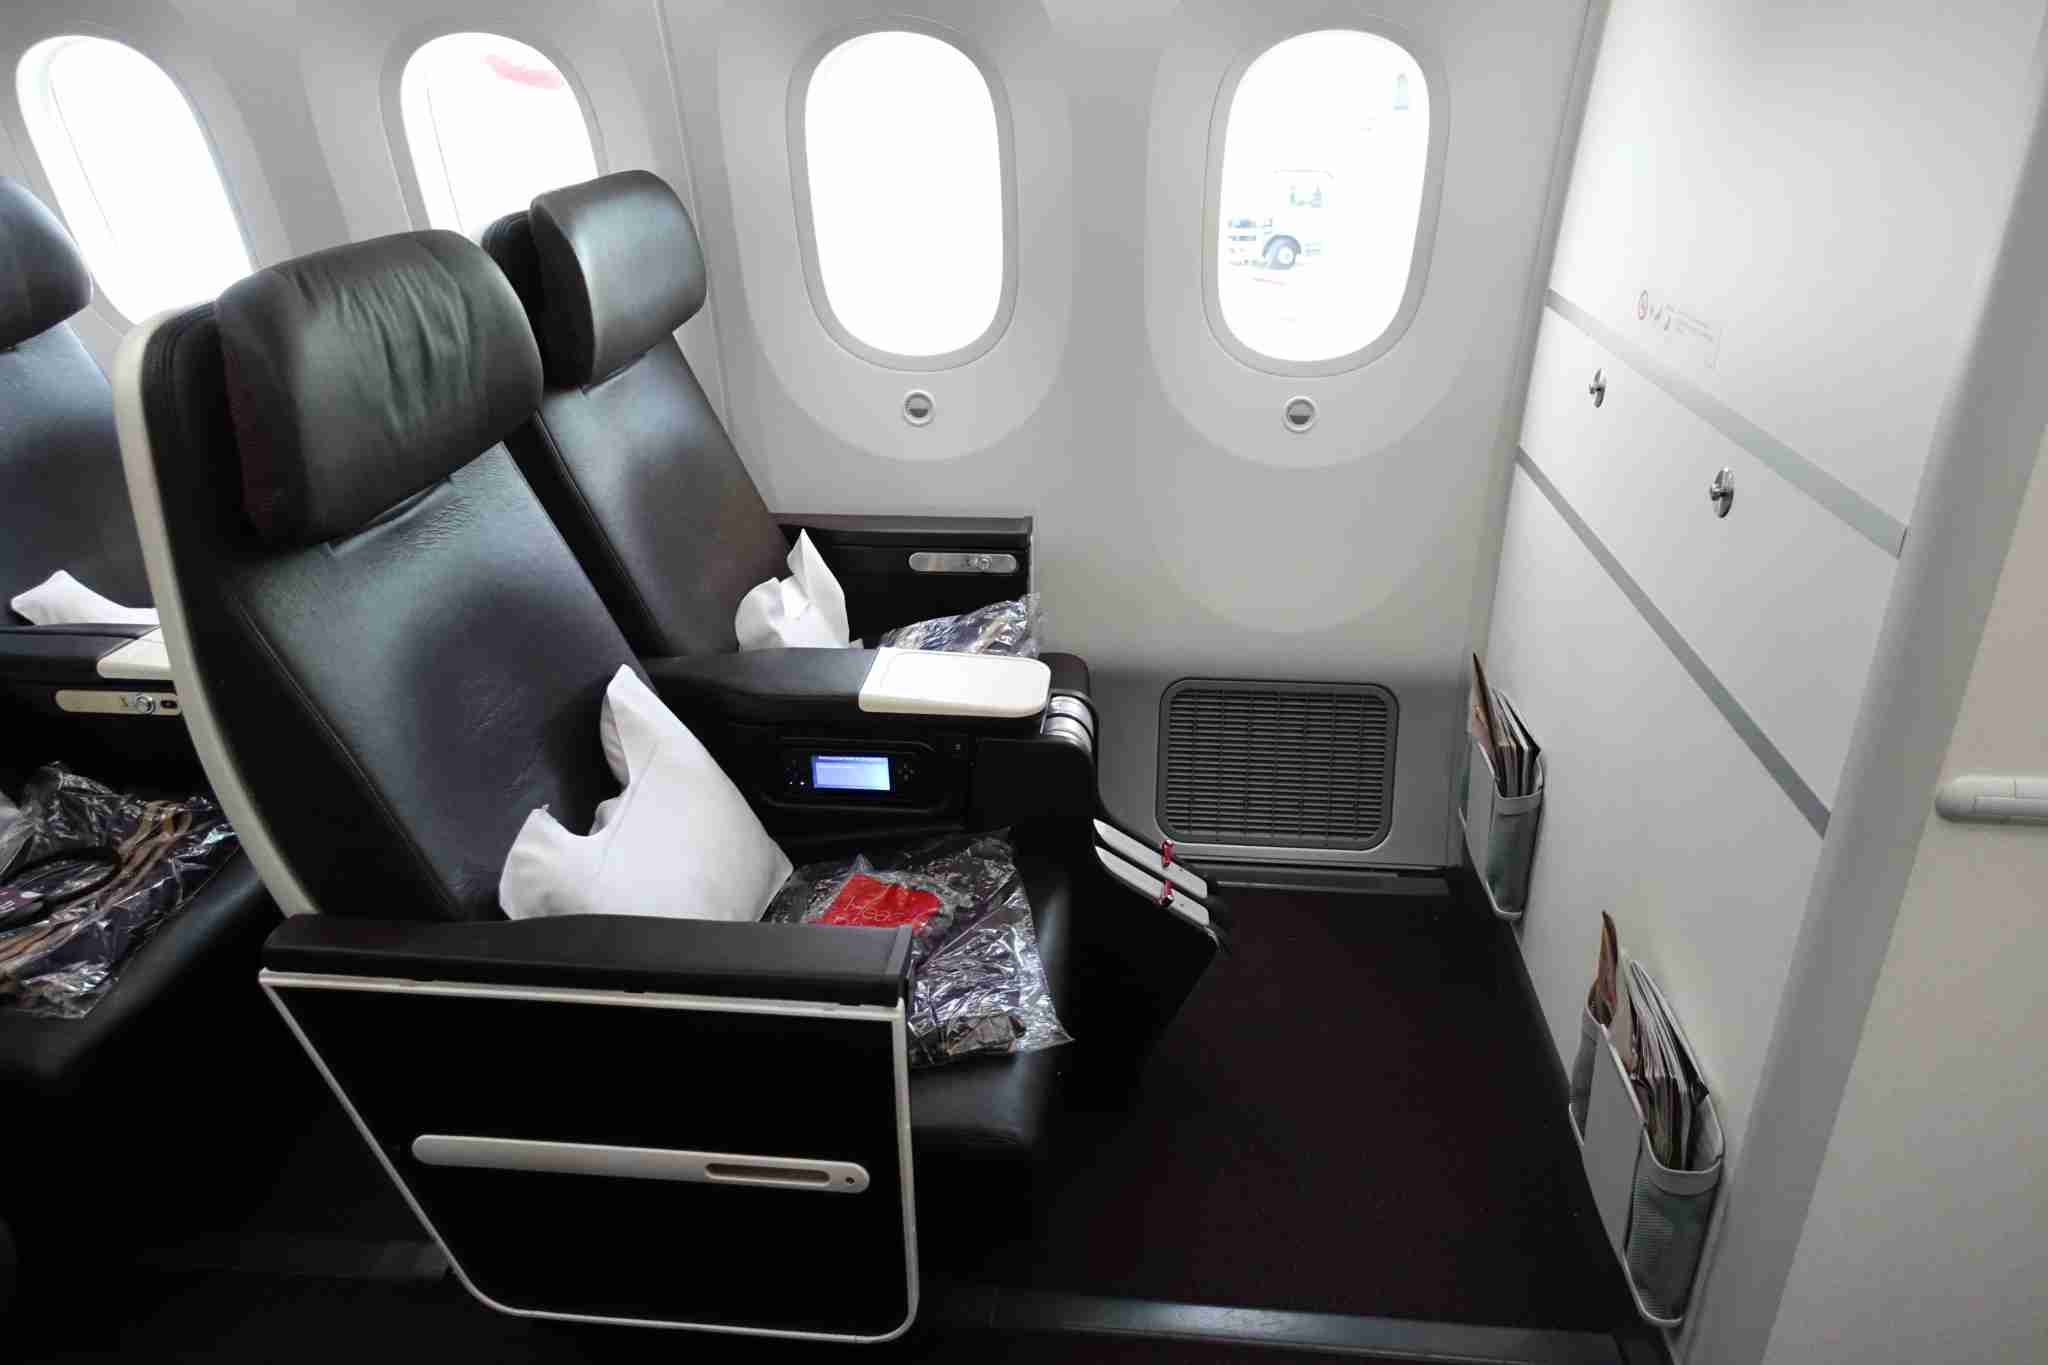 Virgin Atlantic prem econ seat